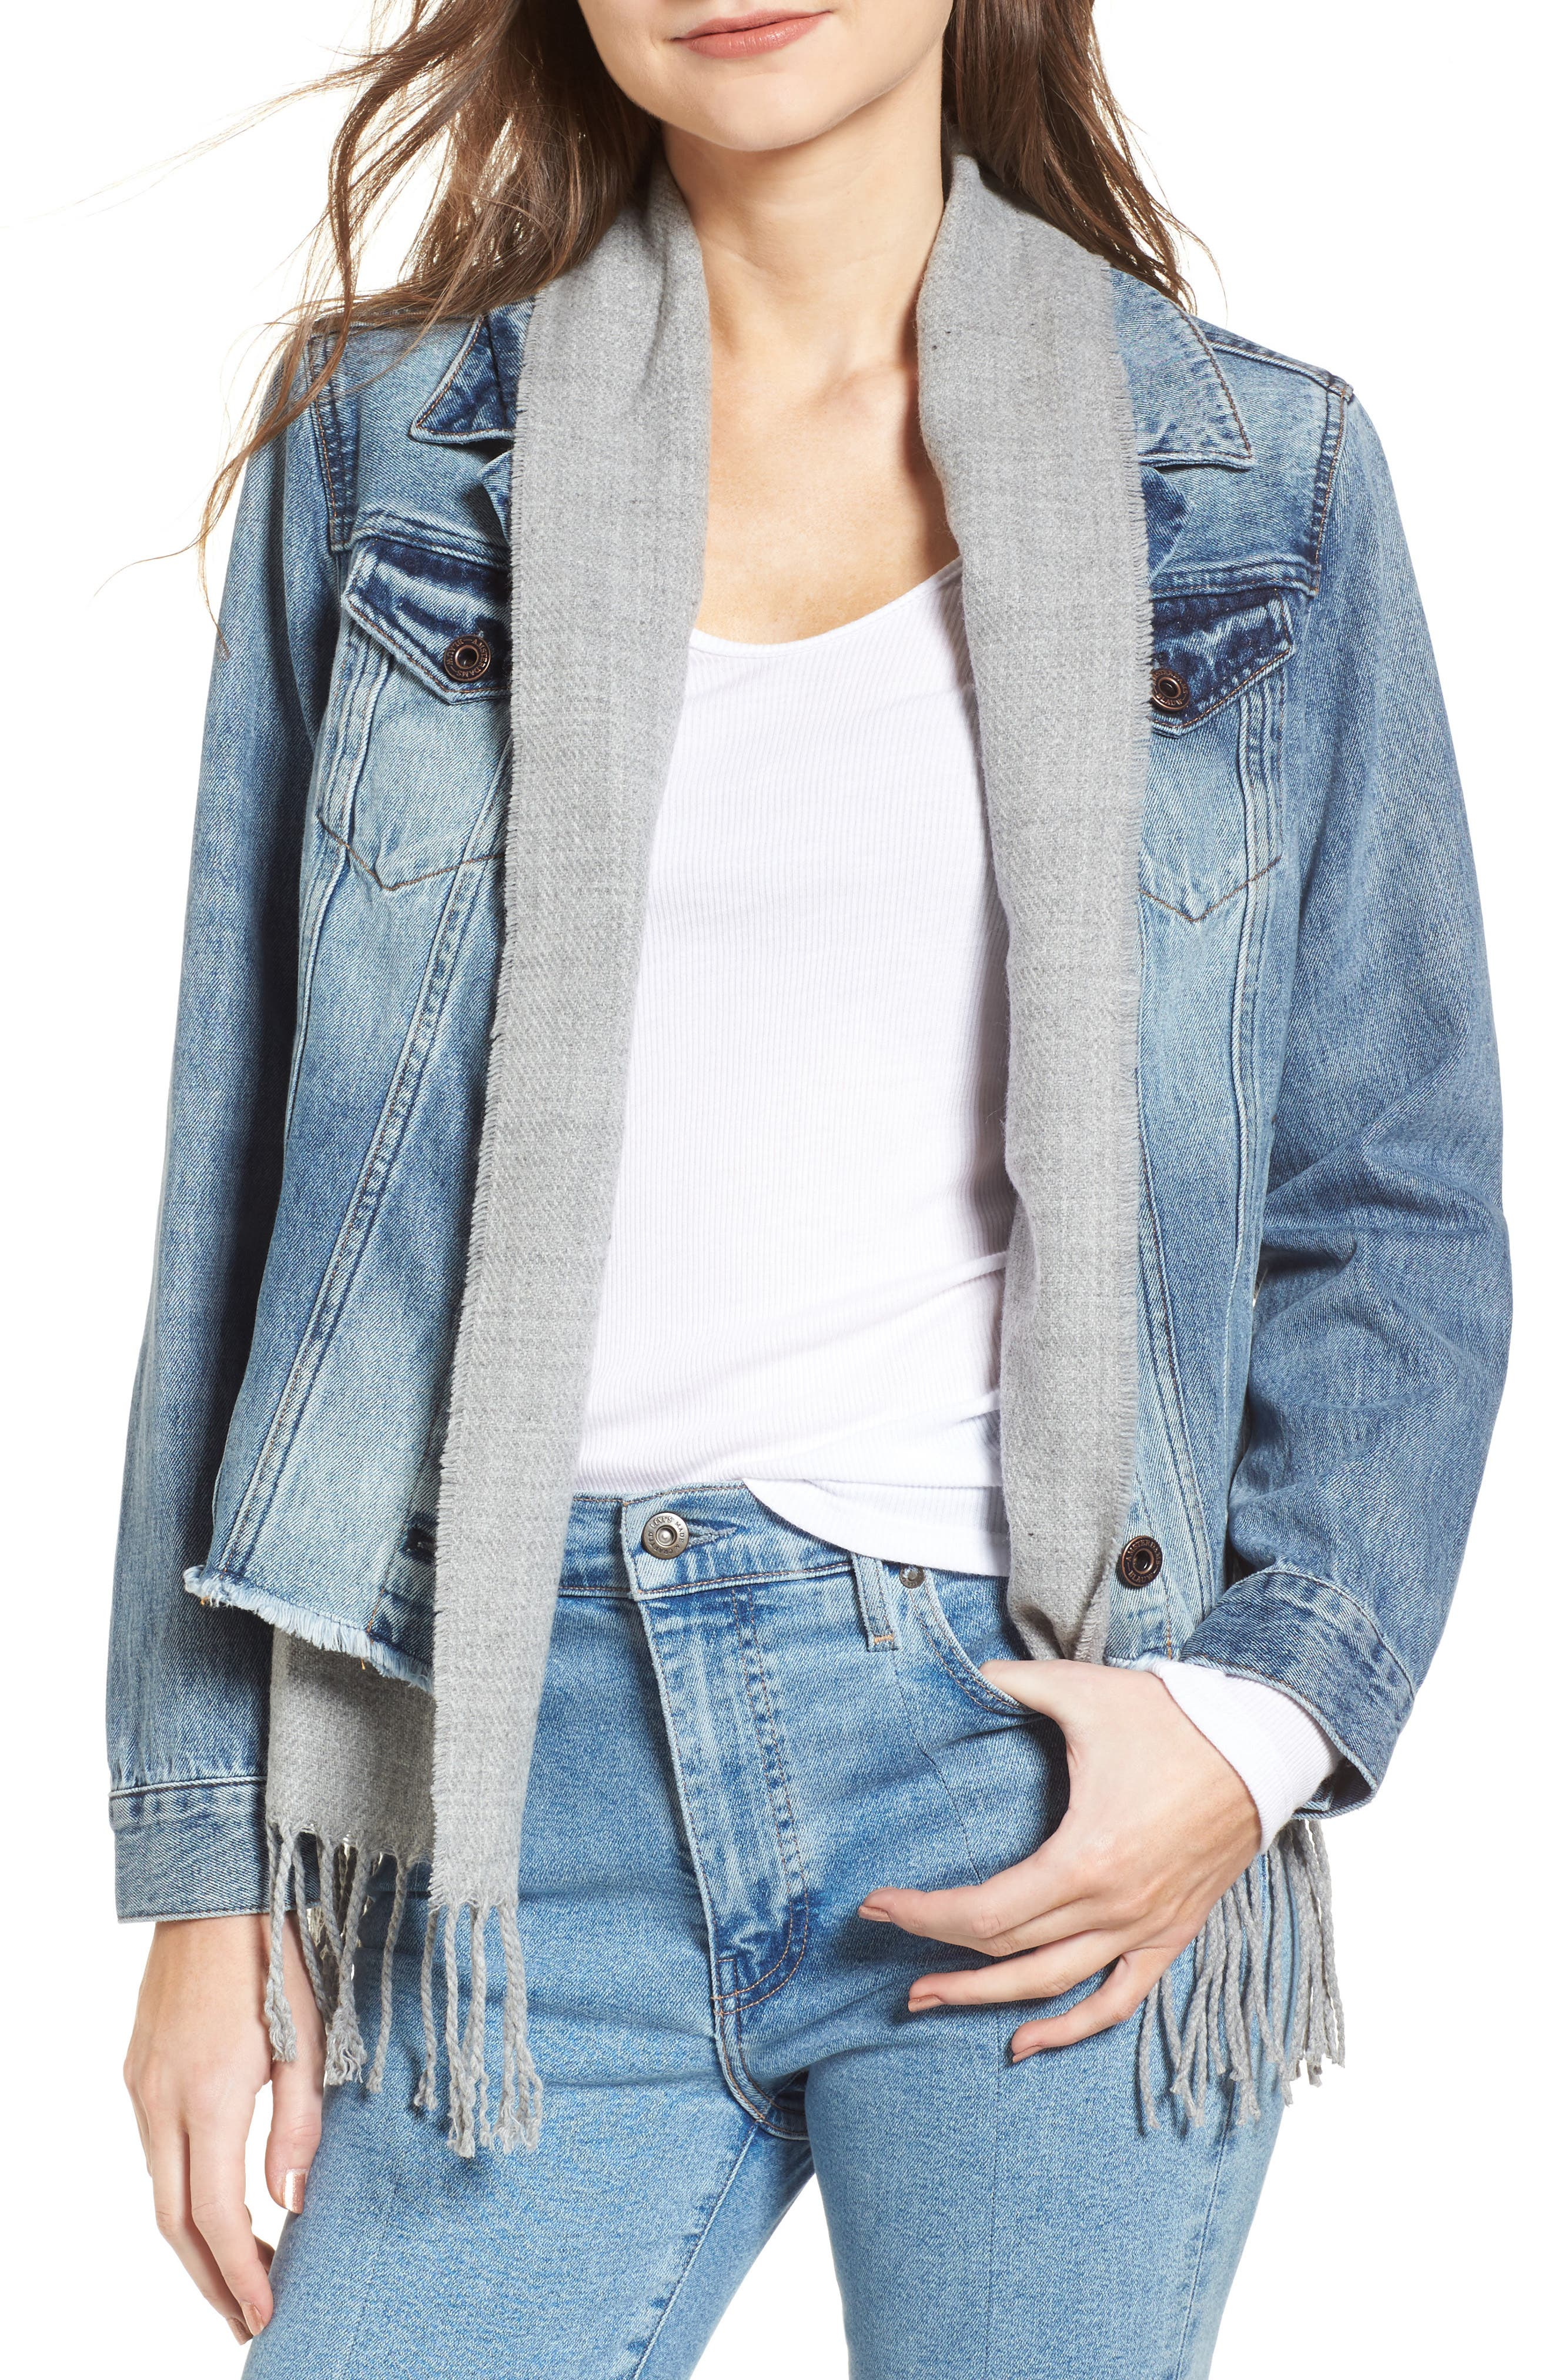 Alternate Image 1 Selected - Scotch & Soda Denim Trucker Jacket with Removable Vest